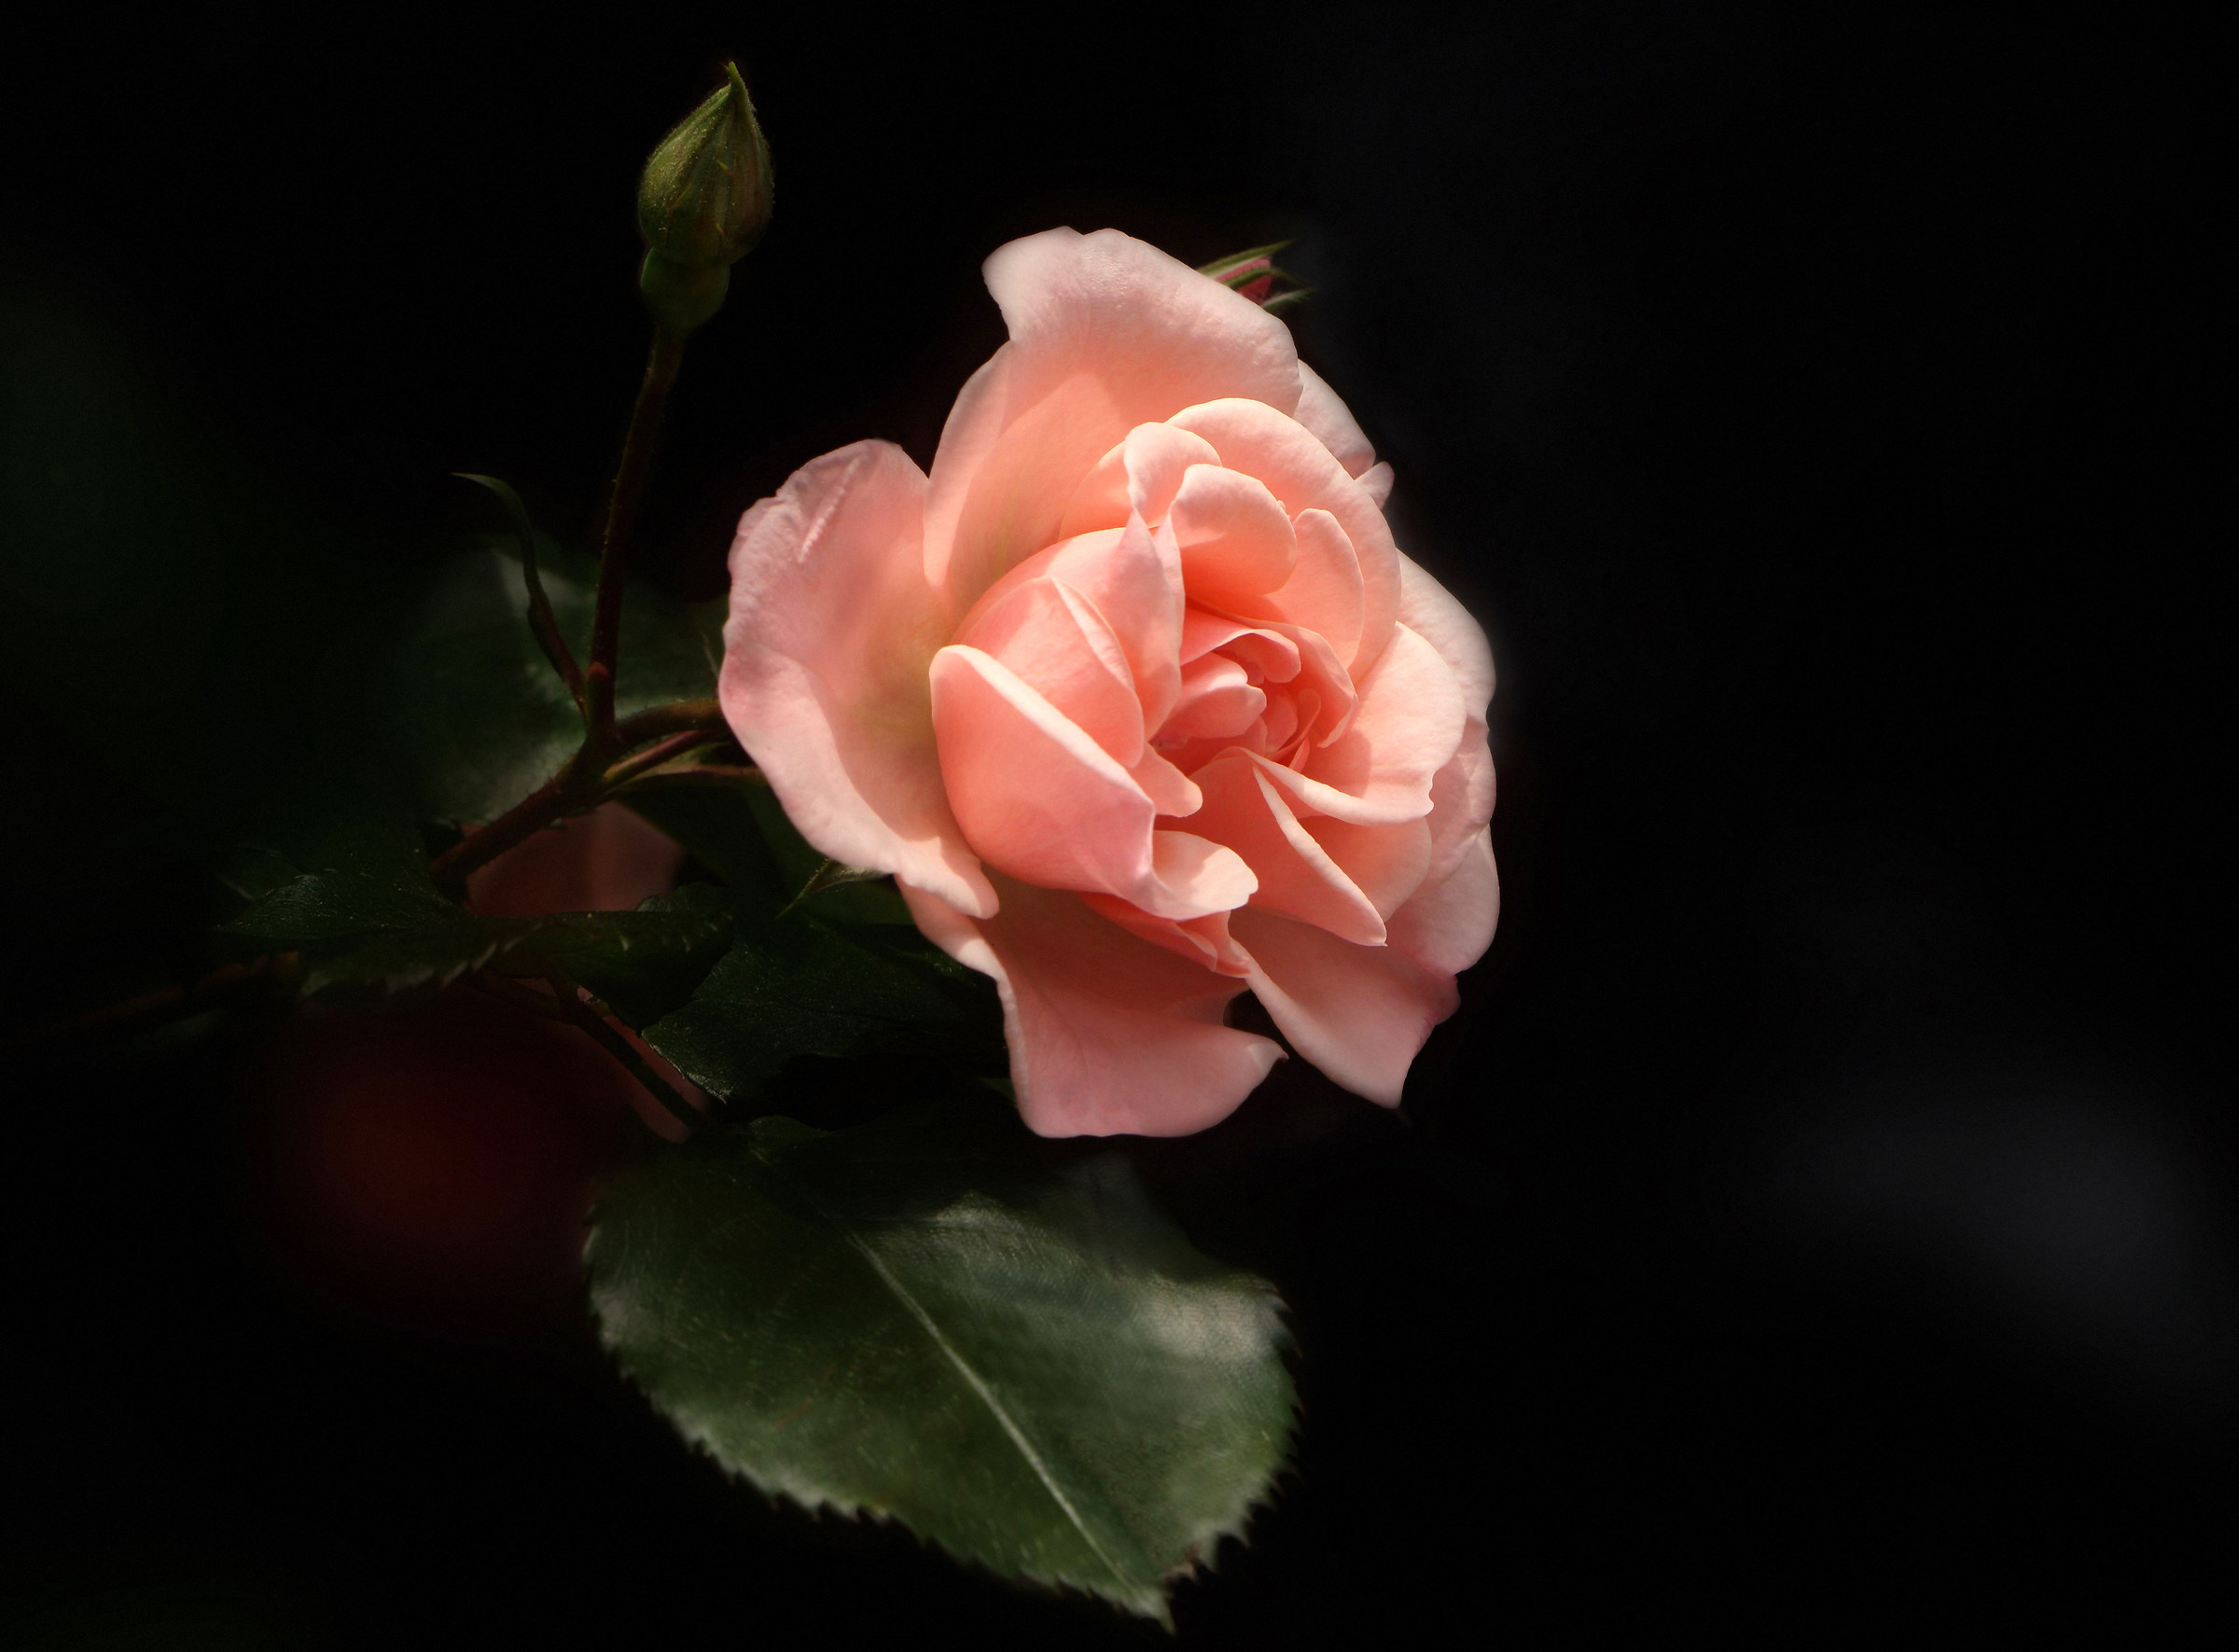 A rose and her skin....